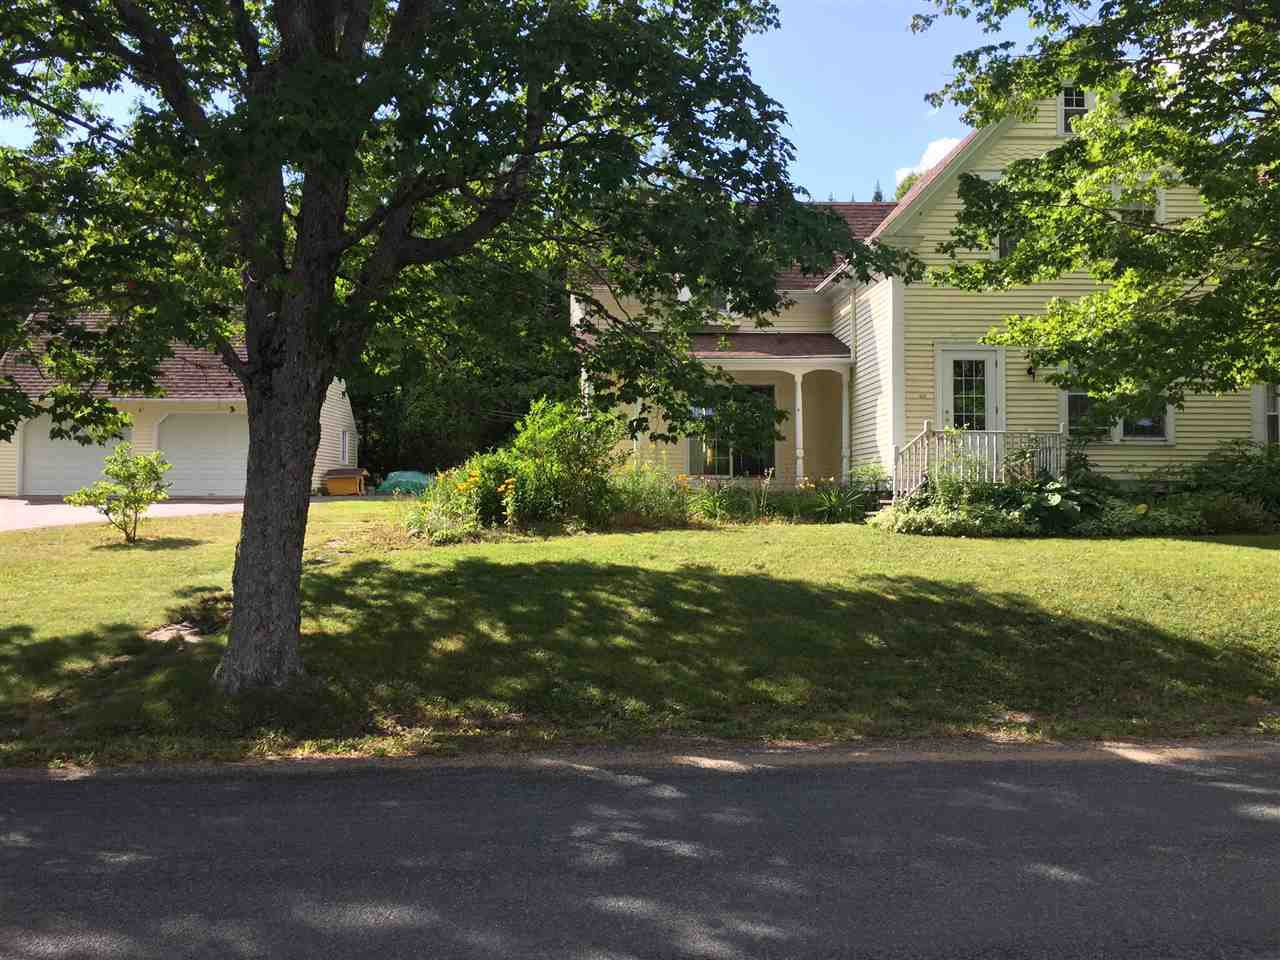 Main Photo: 1056 Mount Pleasant Road in Mount Pleasant: 405-Lunenburg County Residential for sale (South Shore)  : MLS®# 202021116